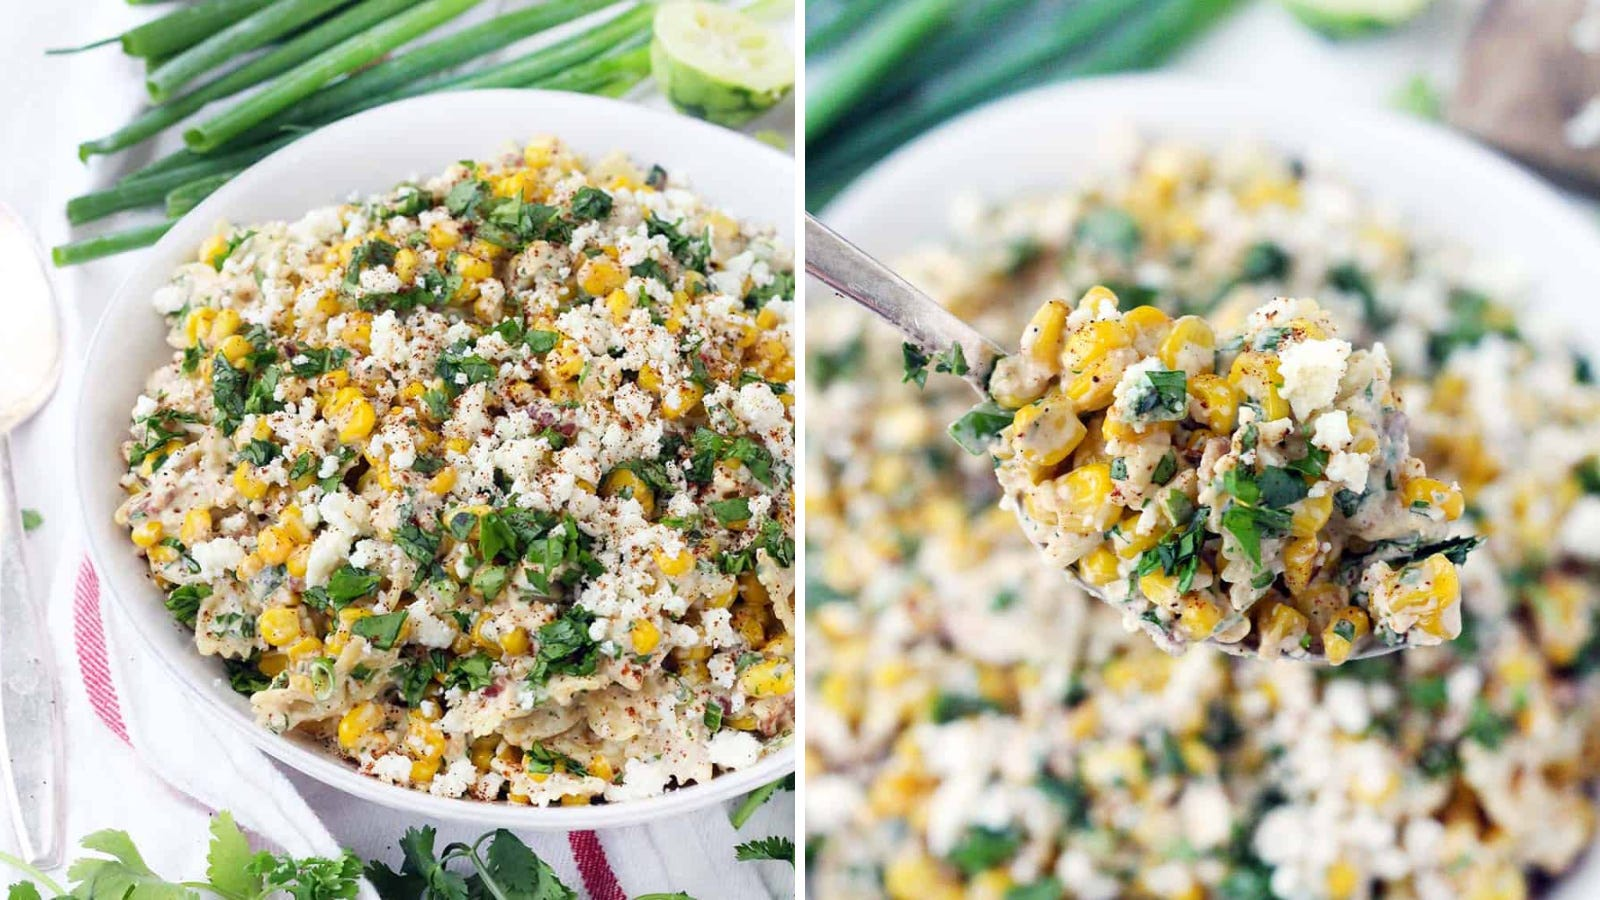 Two images: The left image is of Mexican street corn pasta salad in a bowl with green onions in the background and the right image is of a bowl of the pasta salad with a spoonful zoomed in.